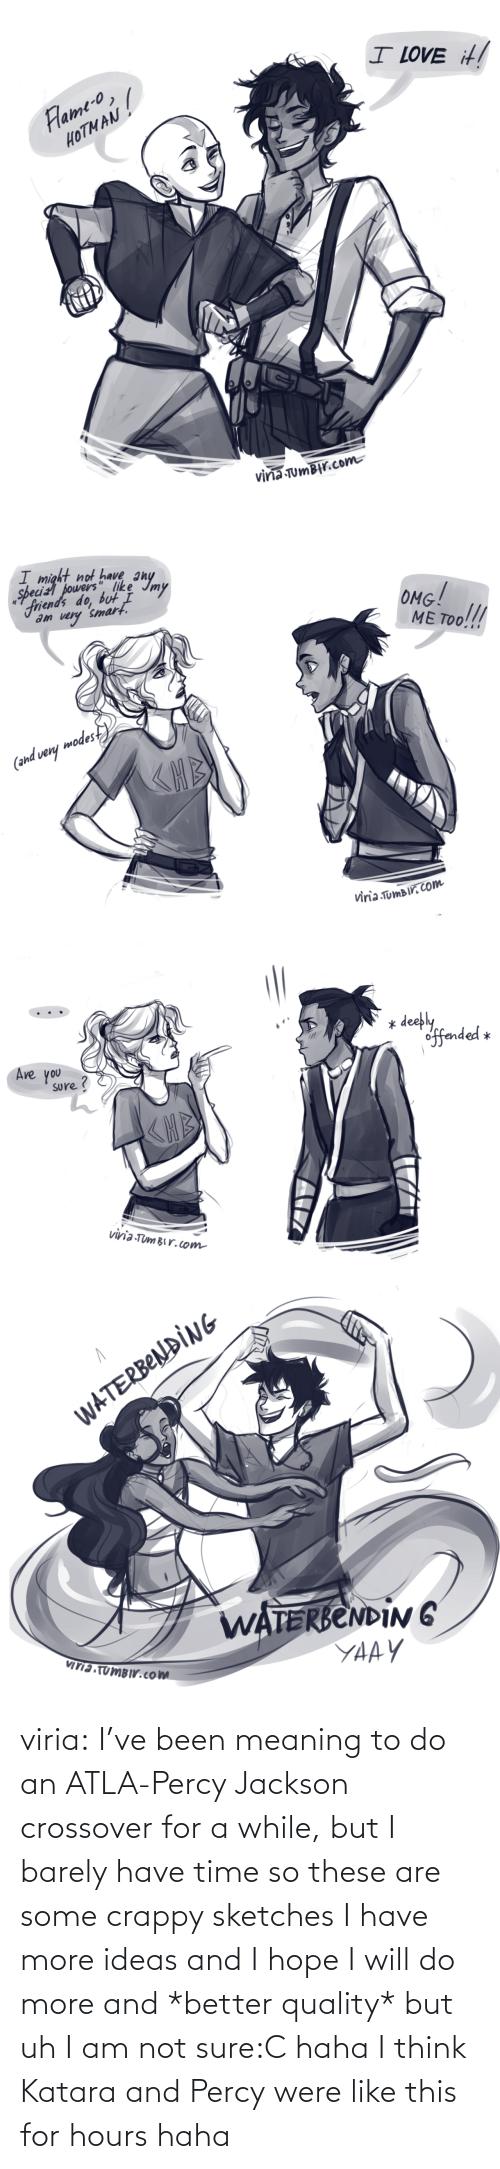 I Am: viria:  I've been meaning to do an ATLA-Percy Jackson crossover for a while, but I barely have time so these are some crappy sketches I have more ideas and I hope I will do more and *better quality* but uh I am not sure:C haha I think Katara and Percy were like this for hours haha